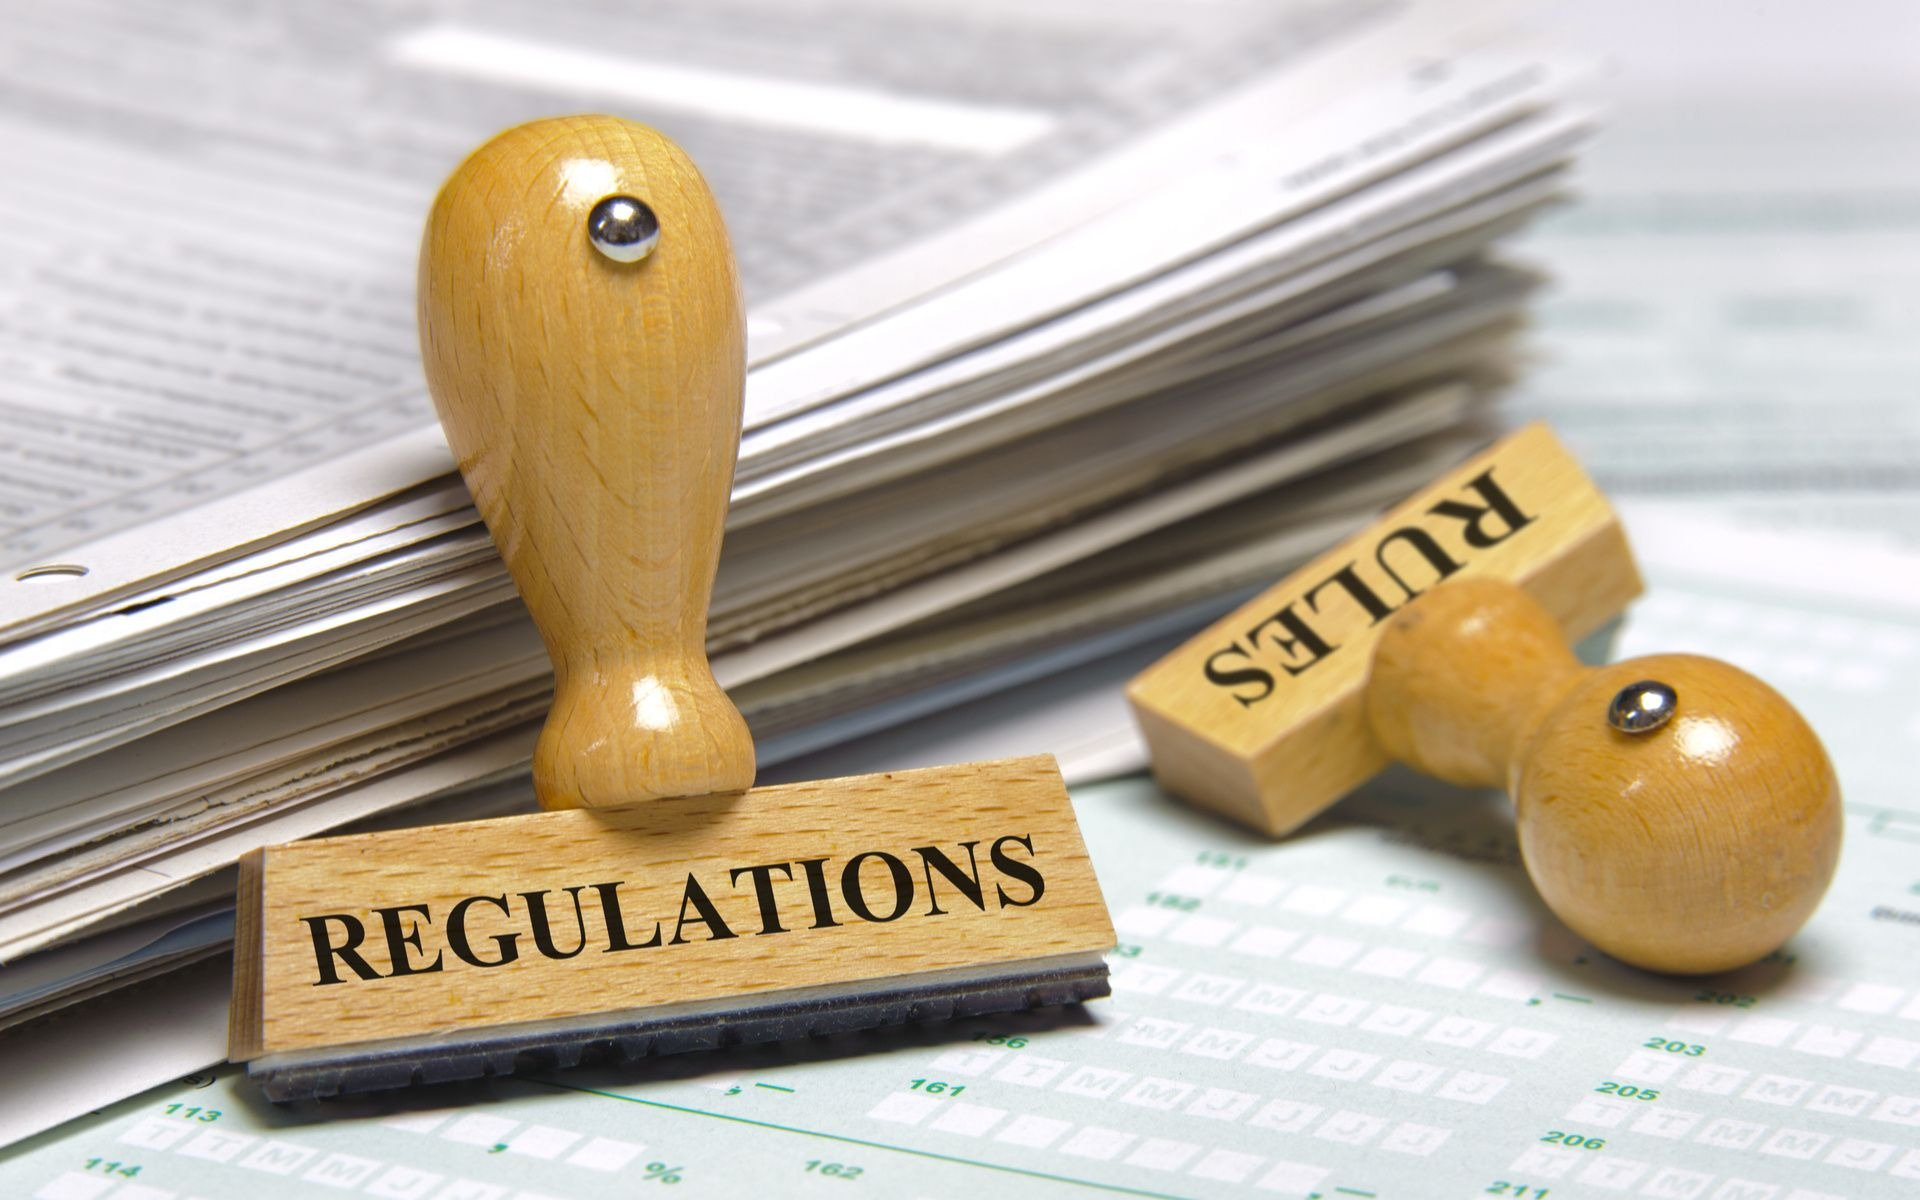 Bitcoin libra attracting regulations